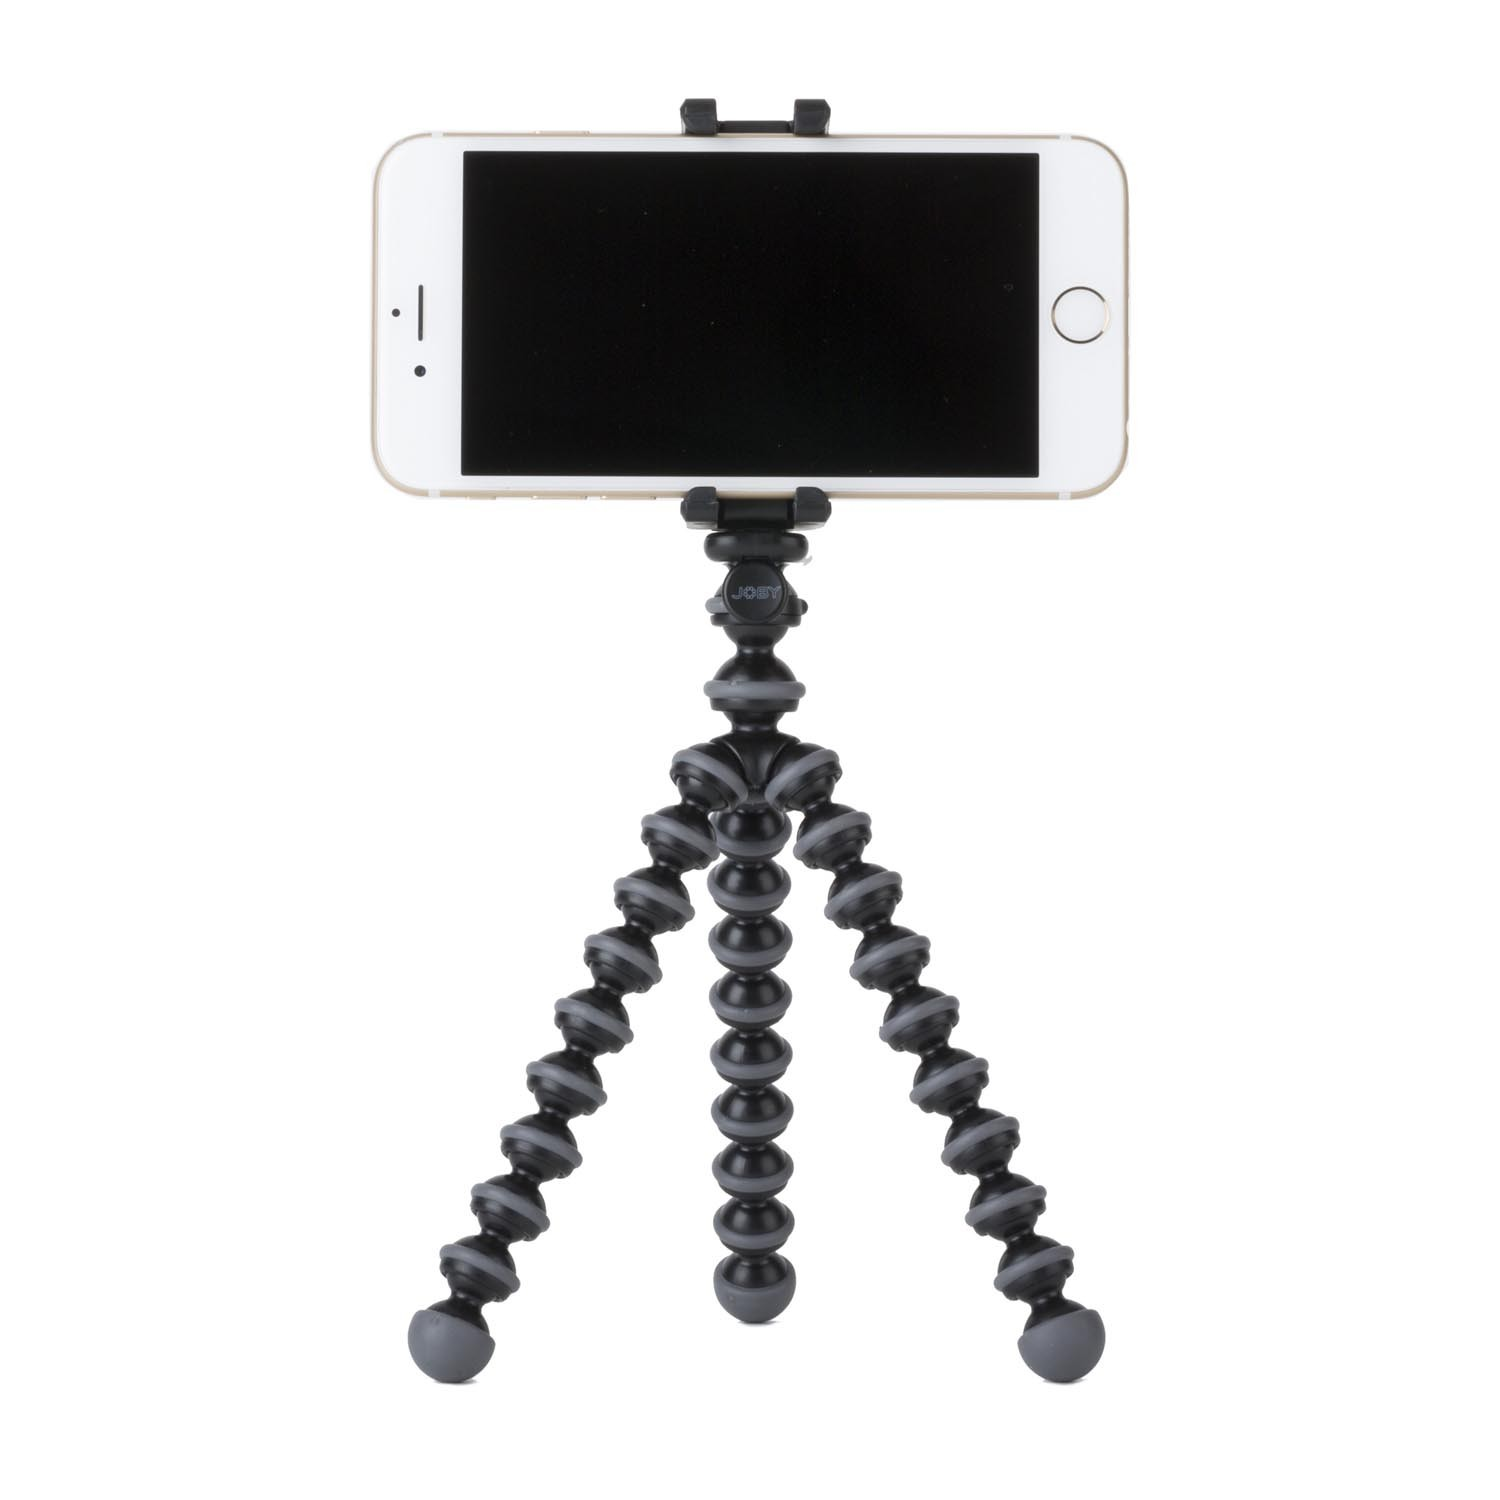 Gorilla Foldable Small Flexible Mobile Professional Tripod Stand